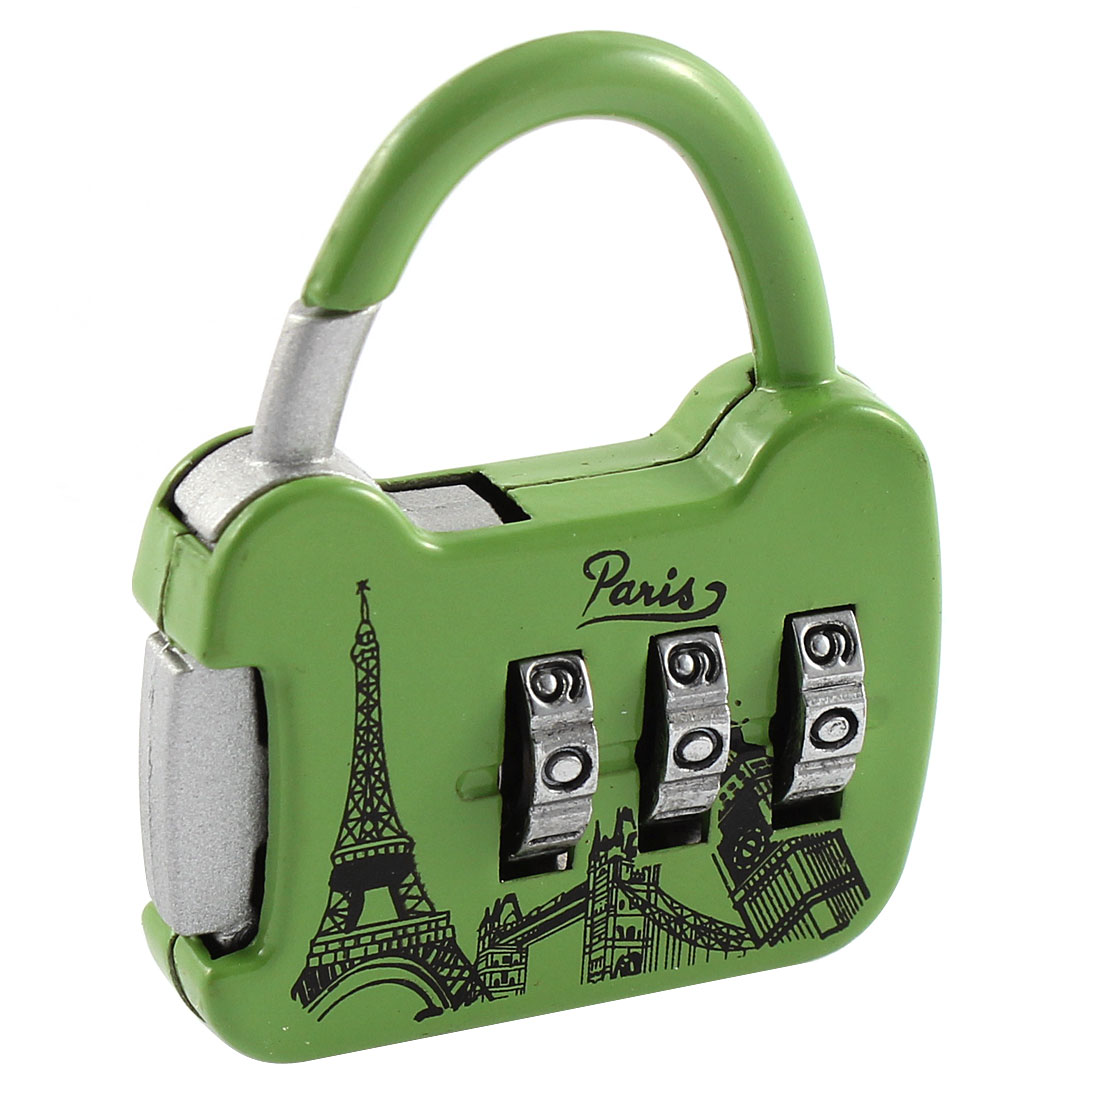 Eiffel Tower Print 3 Digit 0-9 Number Resettable Combination Lock Padlock Green